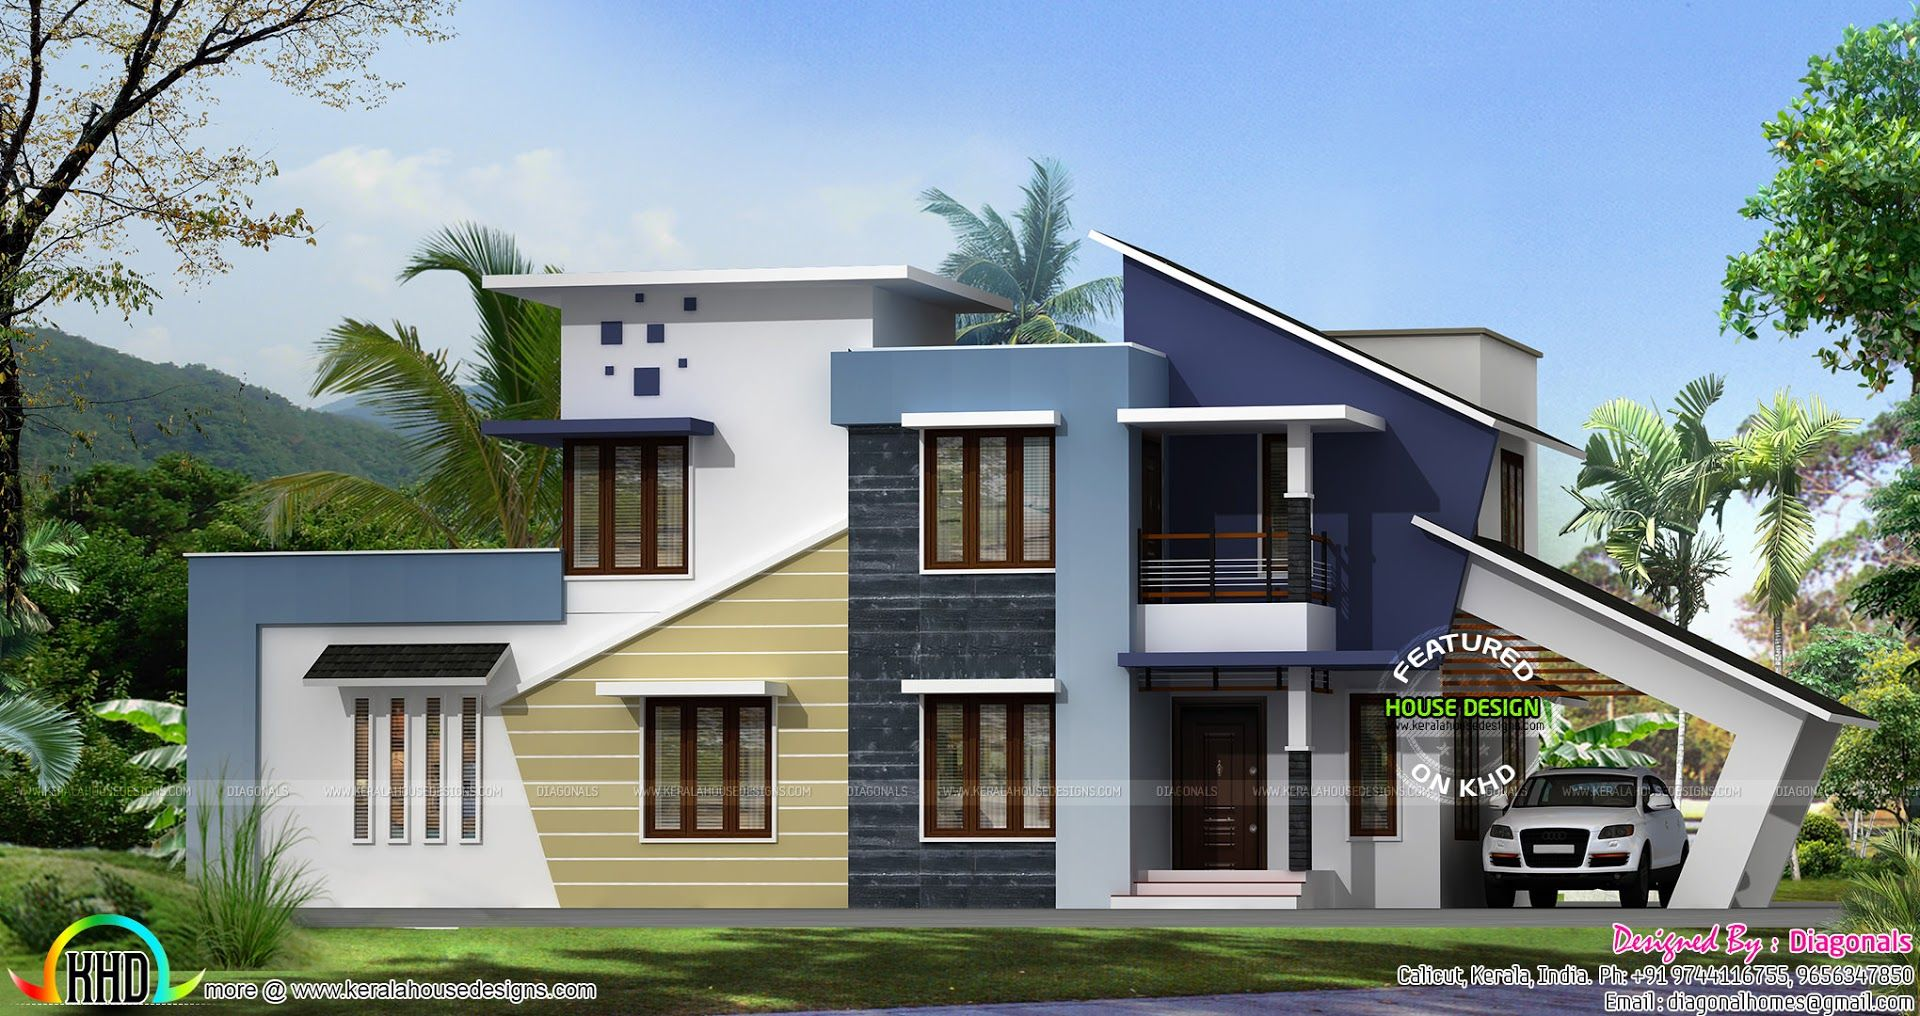 New Generation Home Design House Architecture Design Simple House Design House Designs Exterior